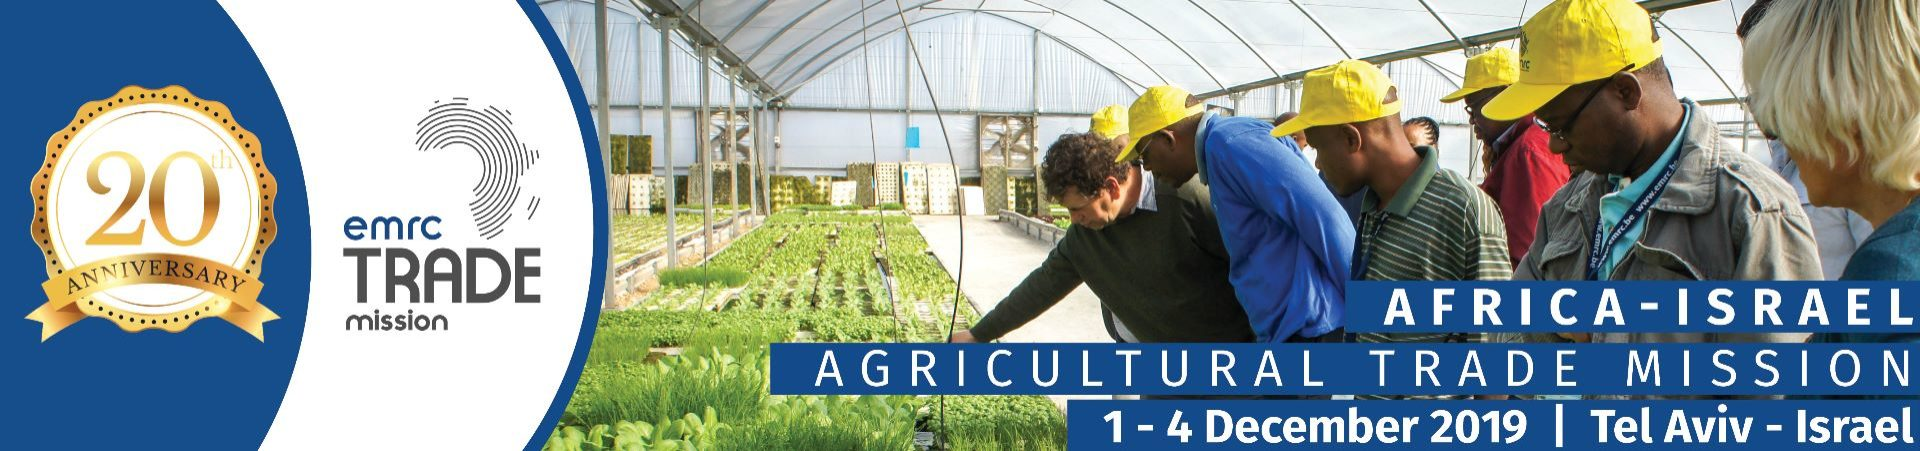 Africa-Israel Agricultural Trade Mission